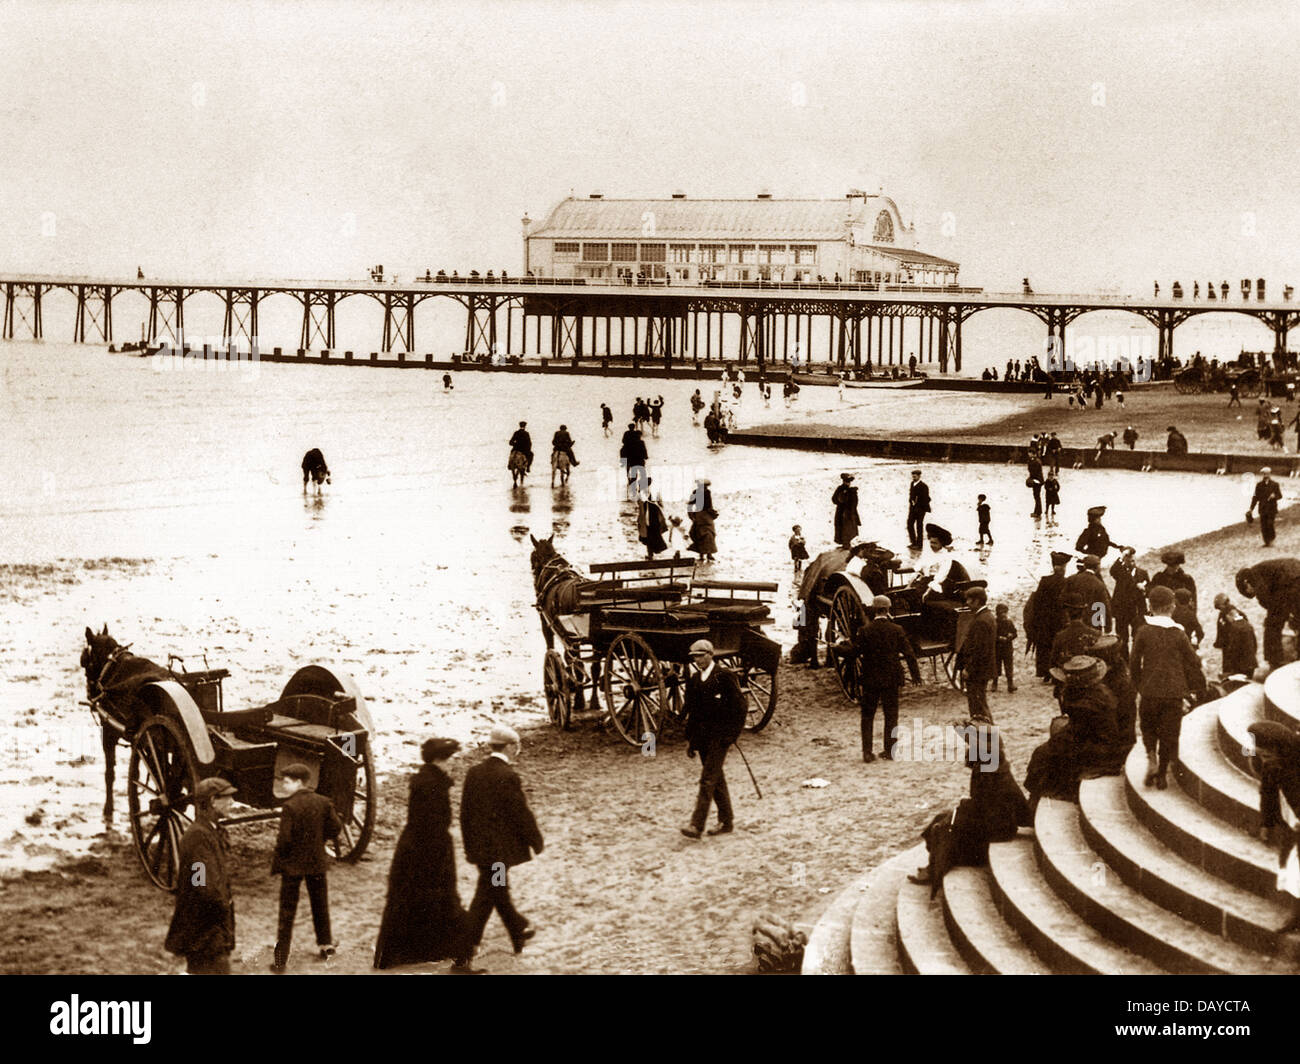 Cleethorpes Pier early 1900s - Stock Image